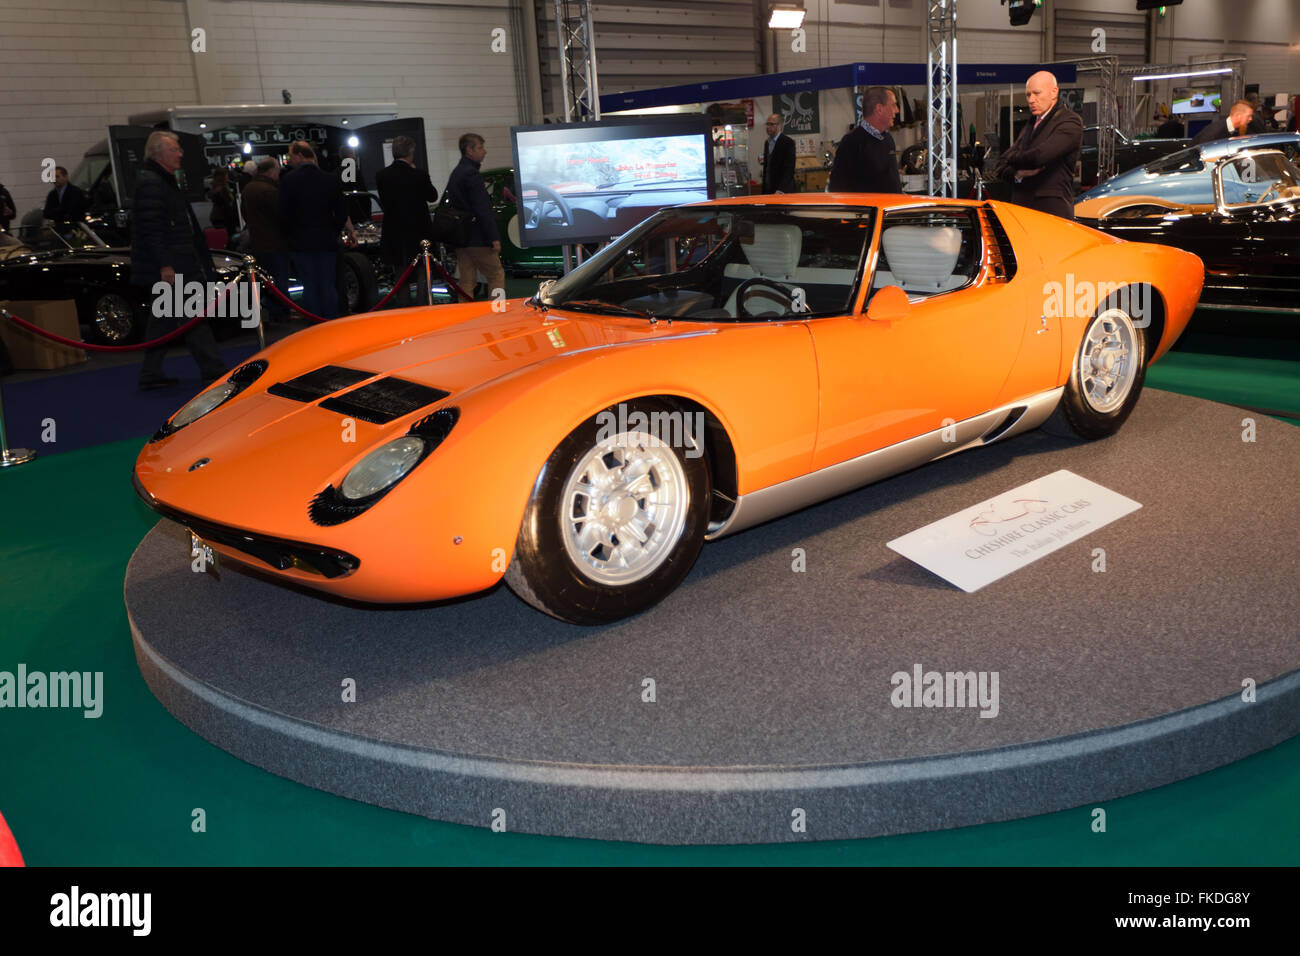 The Original 1968 Italian Job Lamborghini Miura P400 Making Its